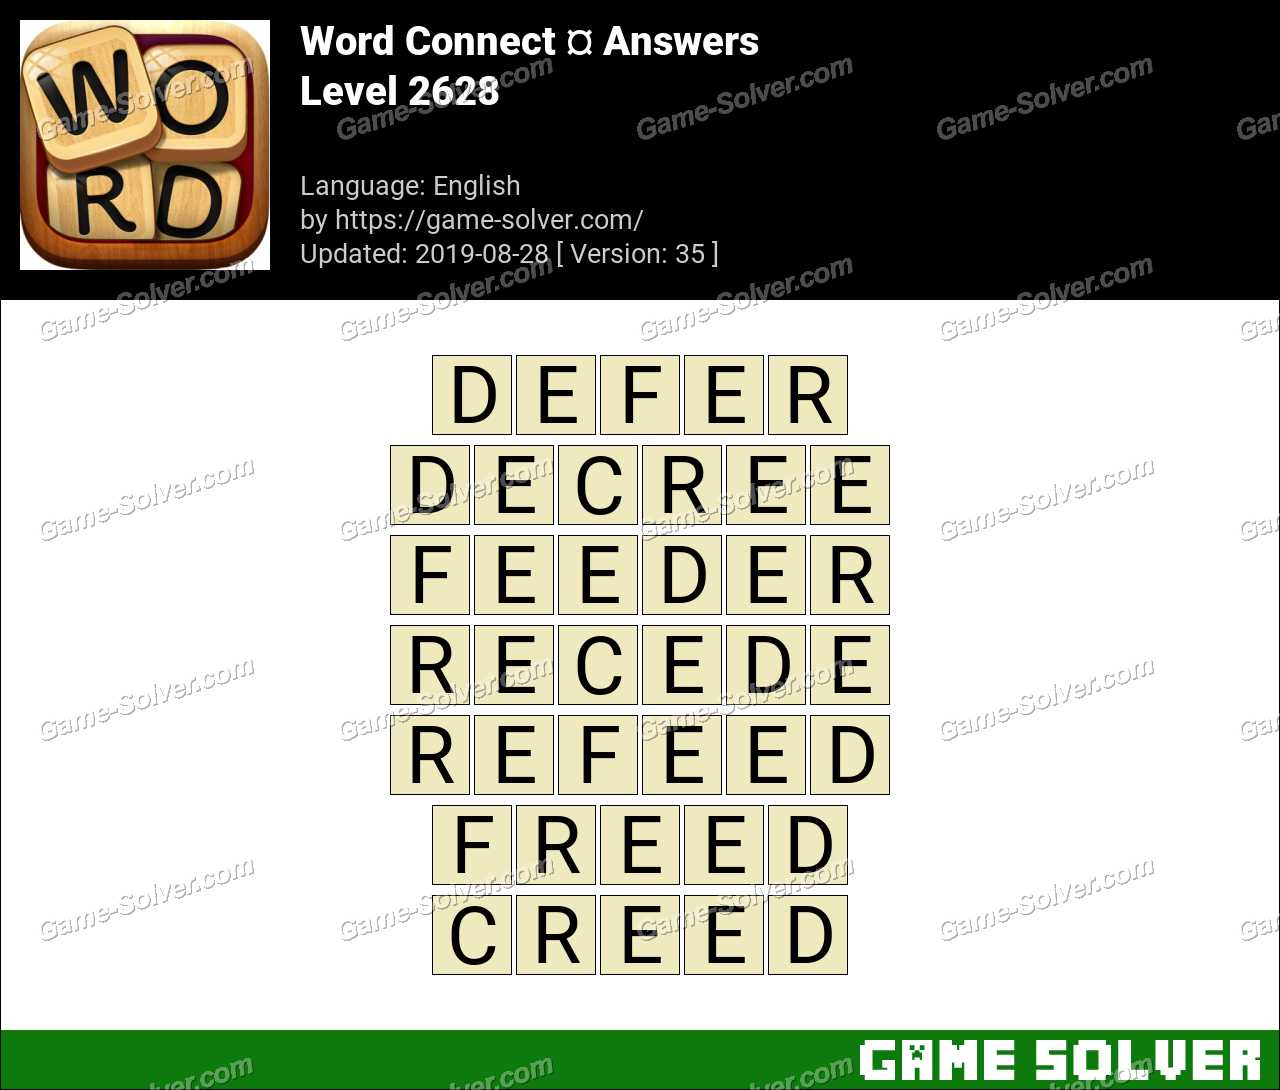 Word Connect Level 2628 Answers